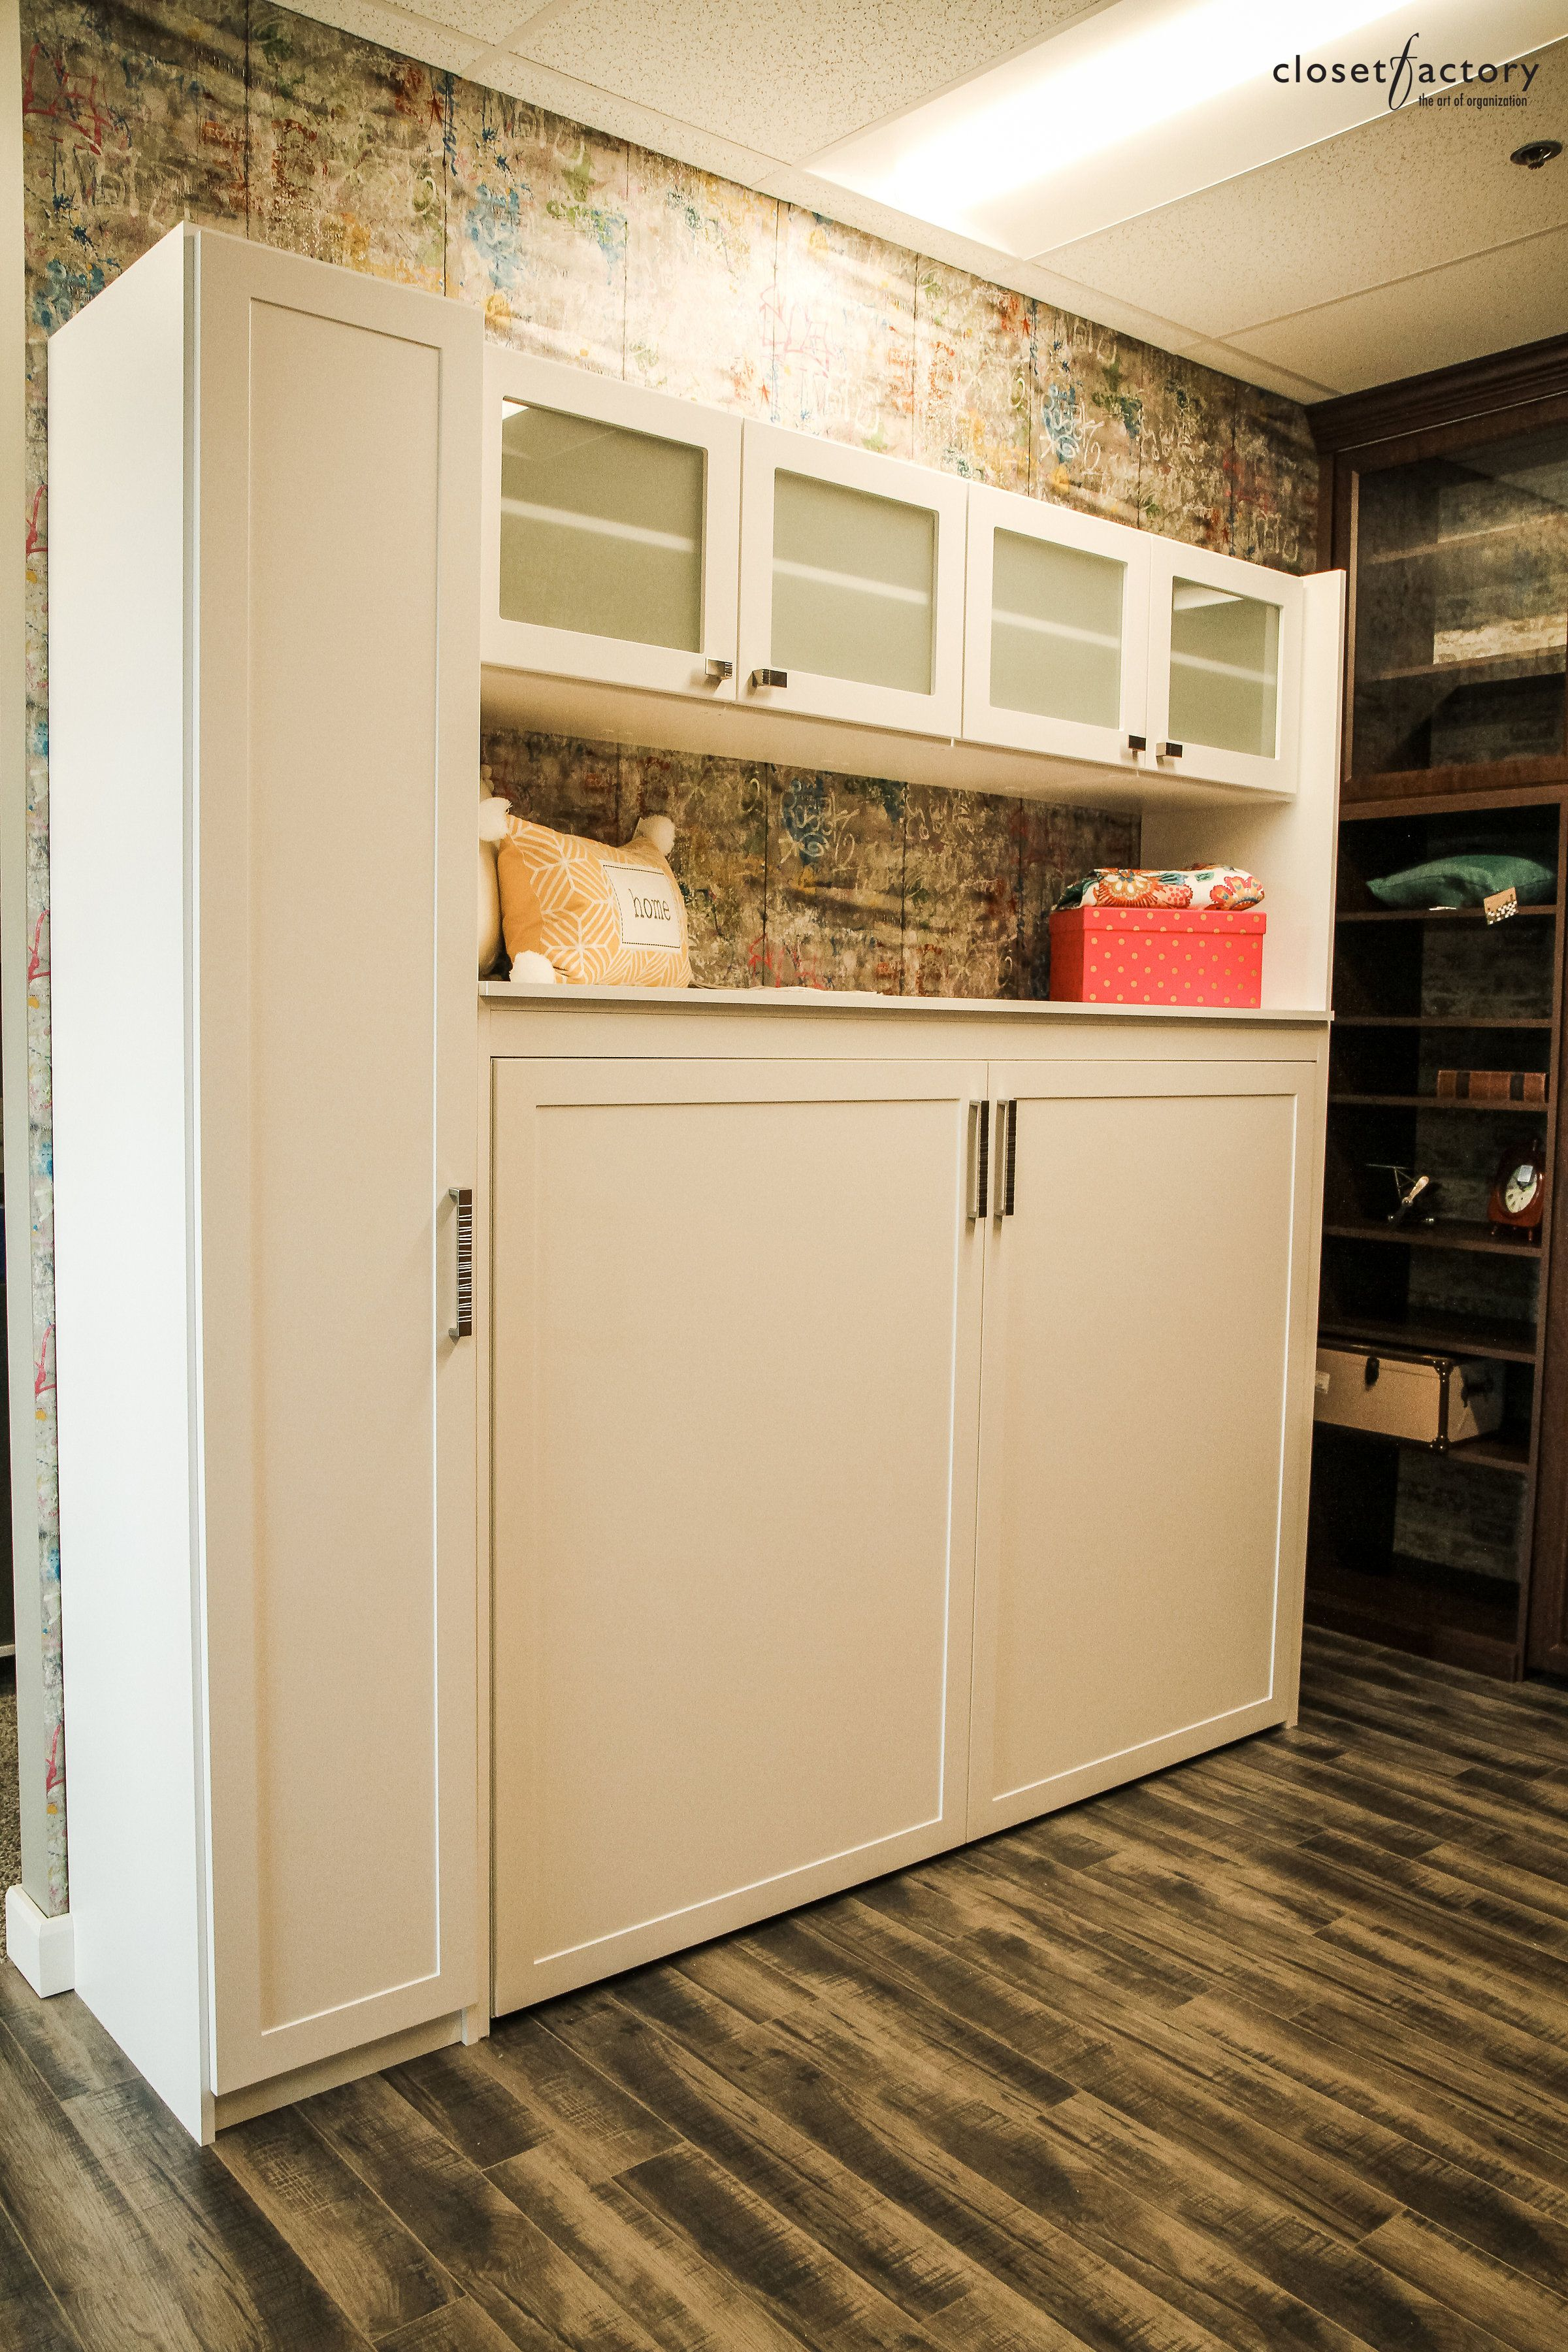 This Wall Unit In White Melamine Has Frosted Glass Cabinet Doors And One  Long Vertical Cabinet